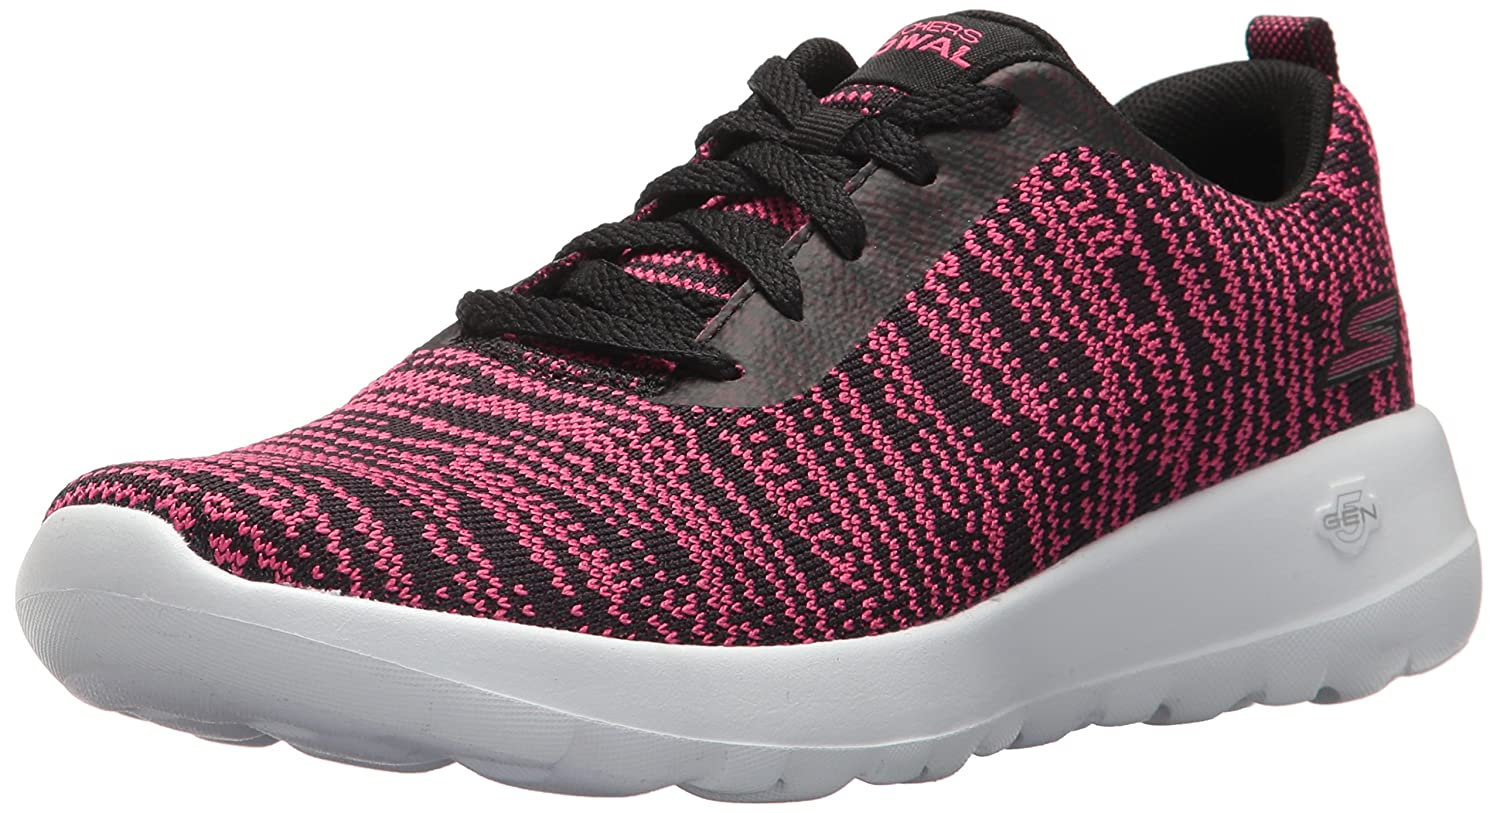 Skechers Joy Go Walk Joy Skechers Rapture, Scarpe da Ginnastica Scarpe da Ginnastica Joy Rapture, Donna   9660aa